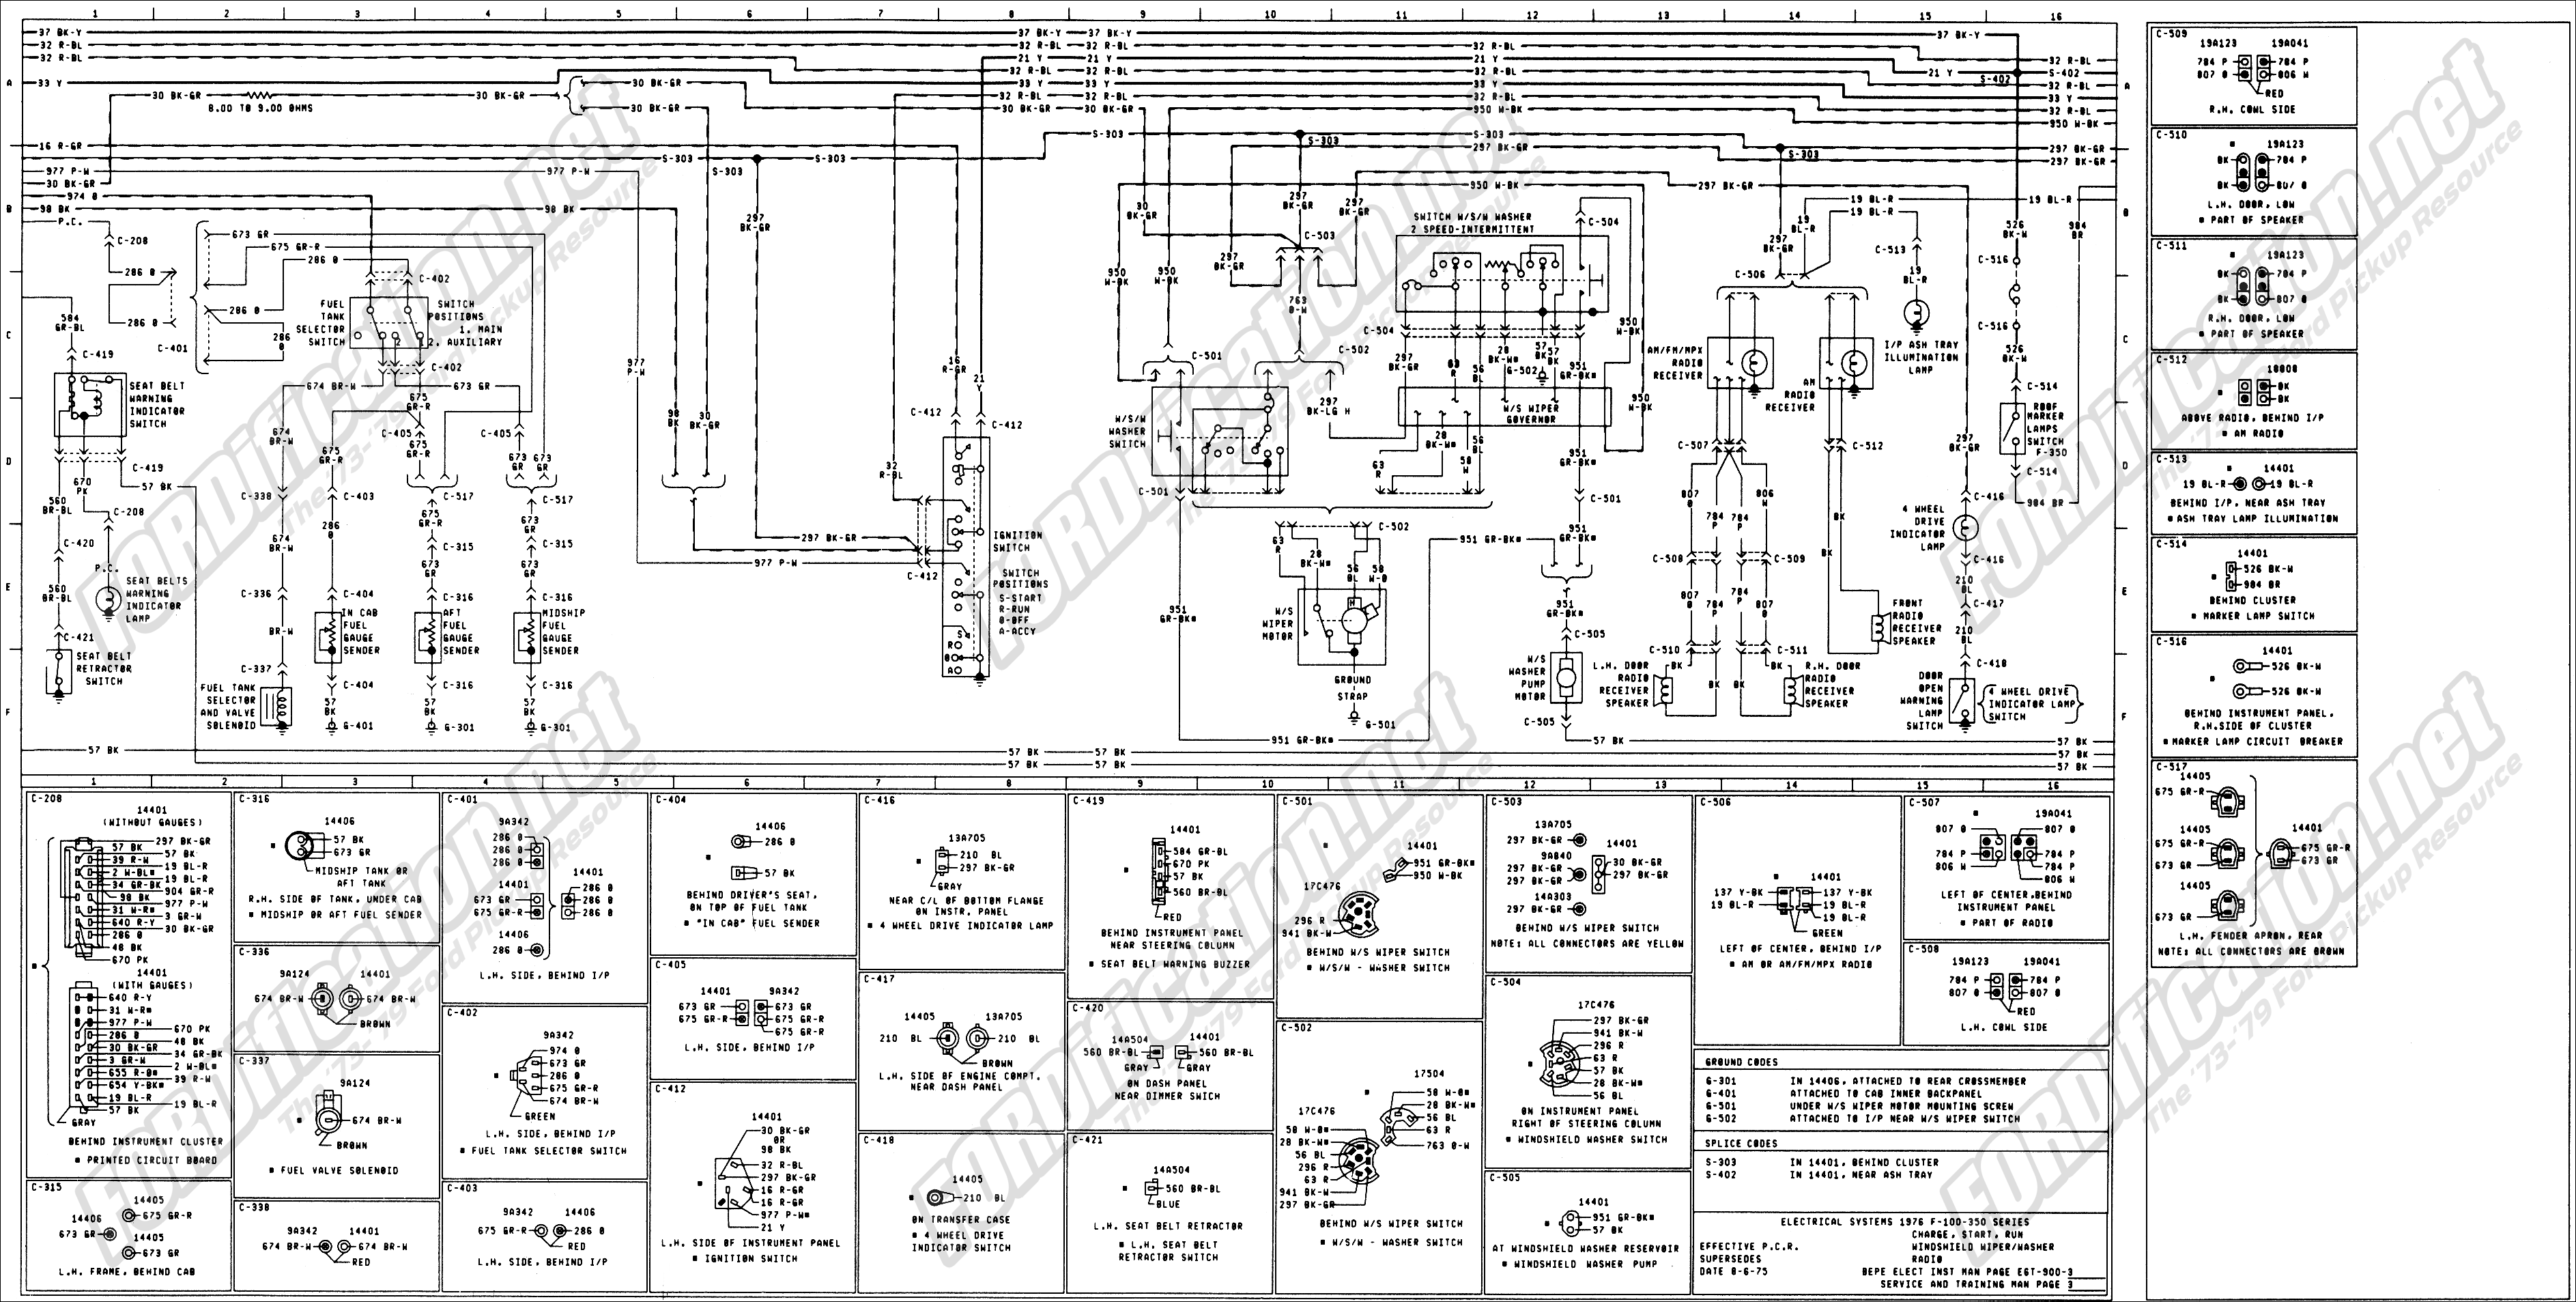 1986 F150 Fuel Gauge Wiring Diagram Free Picture Simple Guide 2003 Alero Fuse Instrument Cluster Various Electrical Issues Page 2